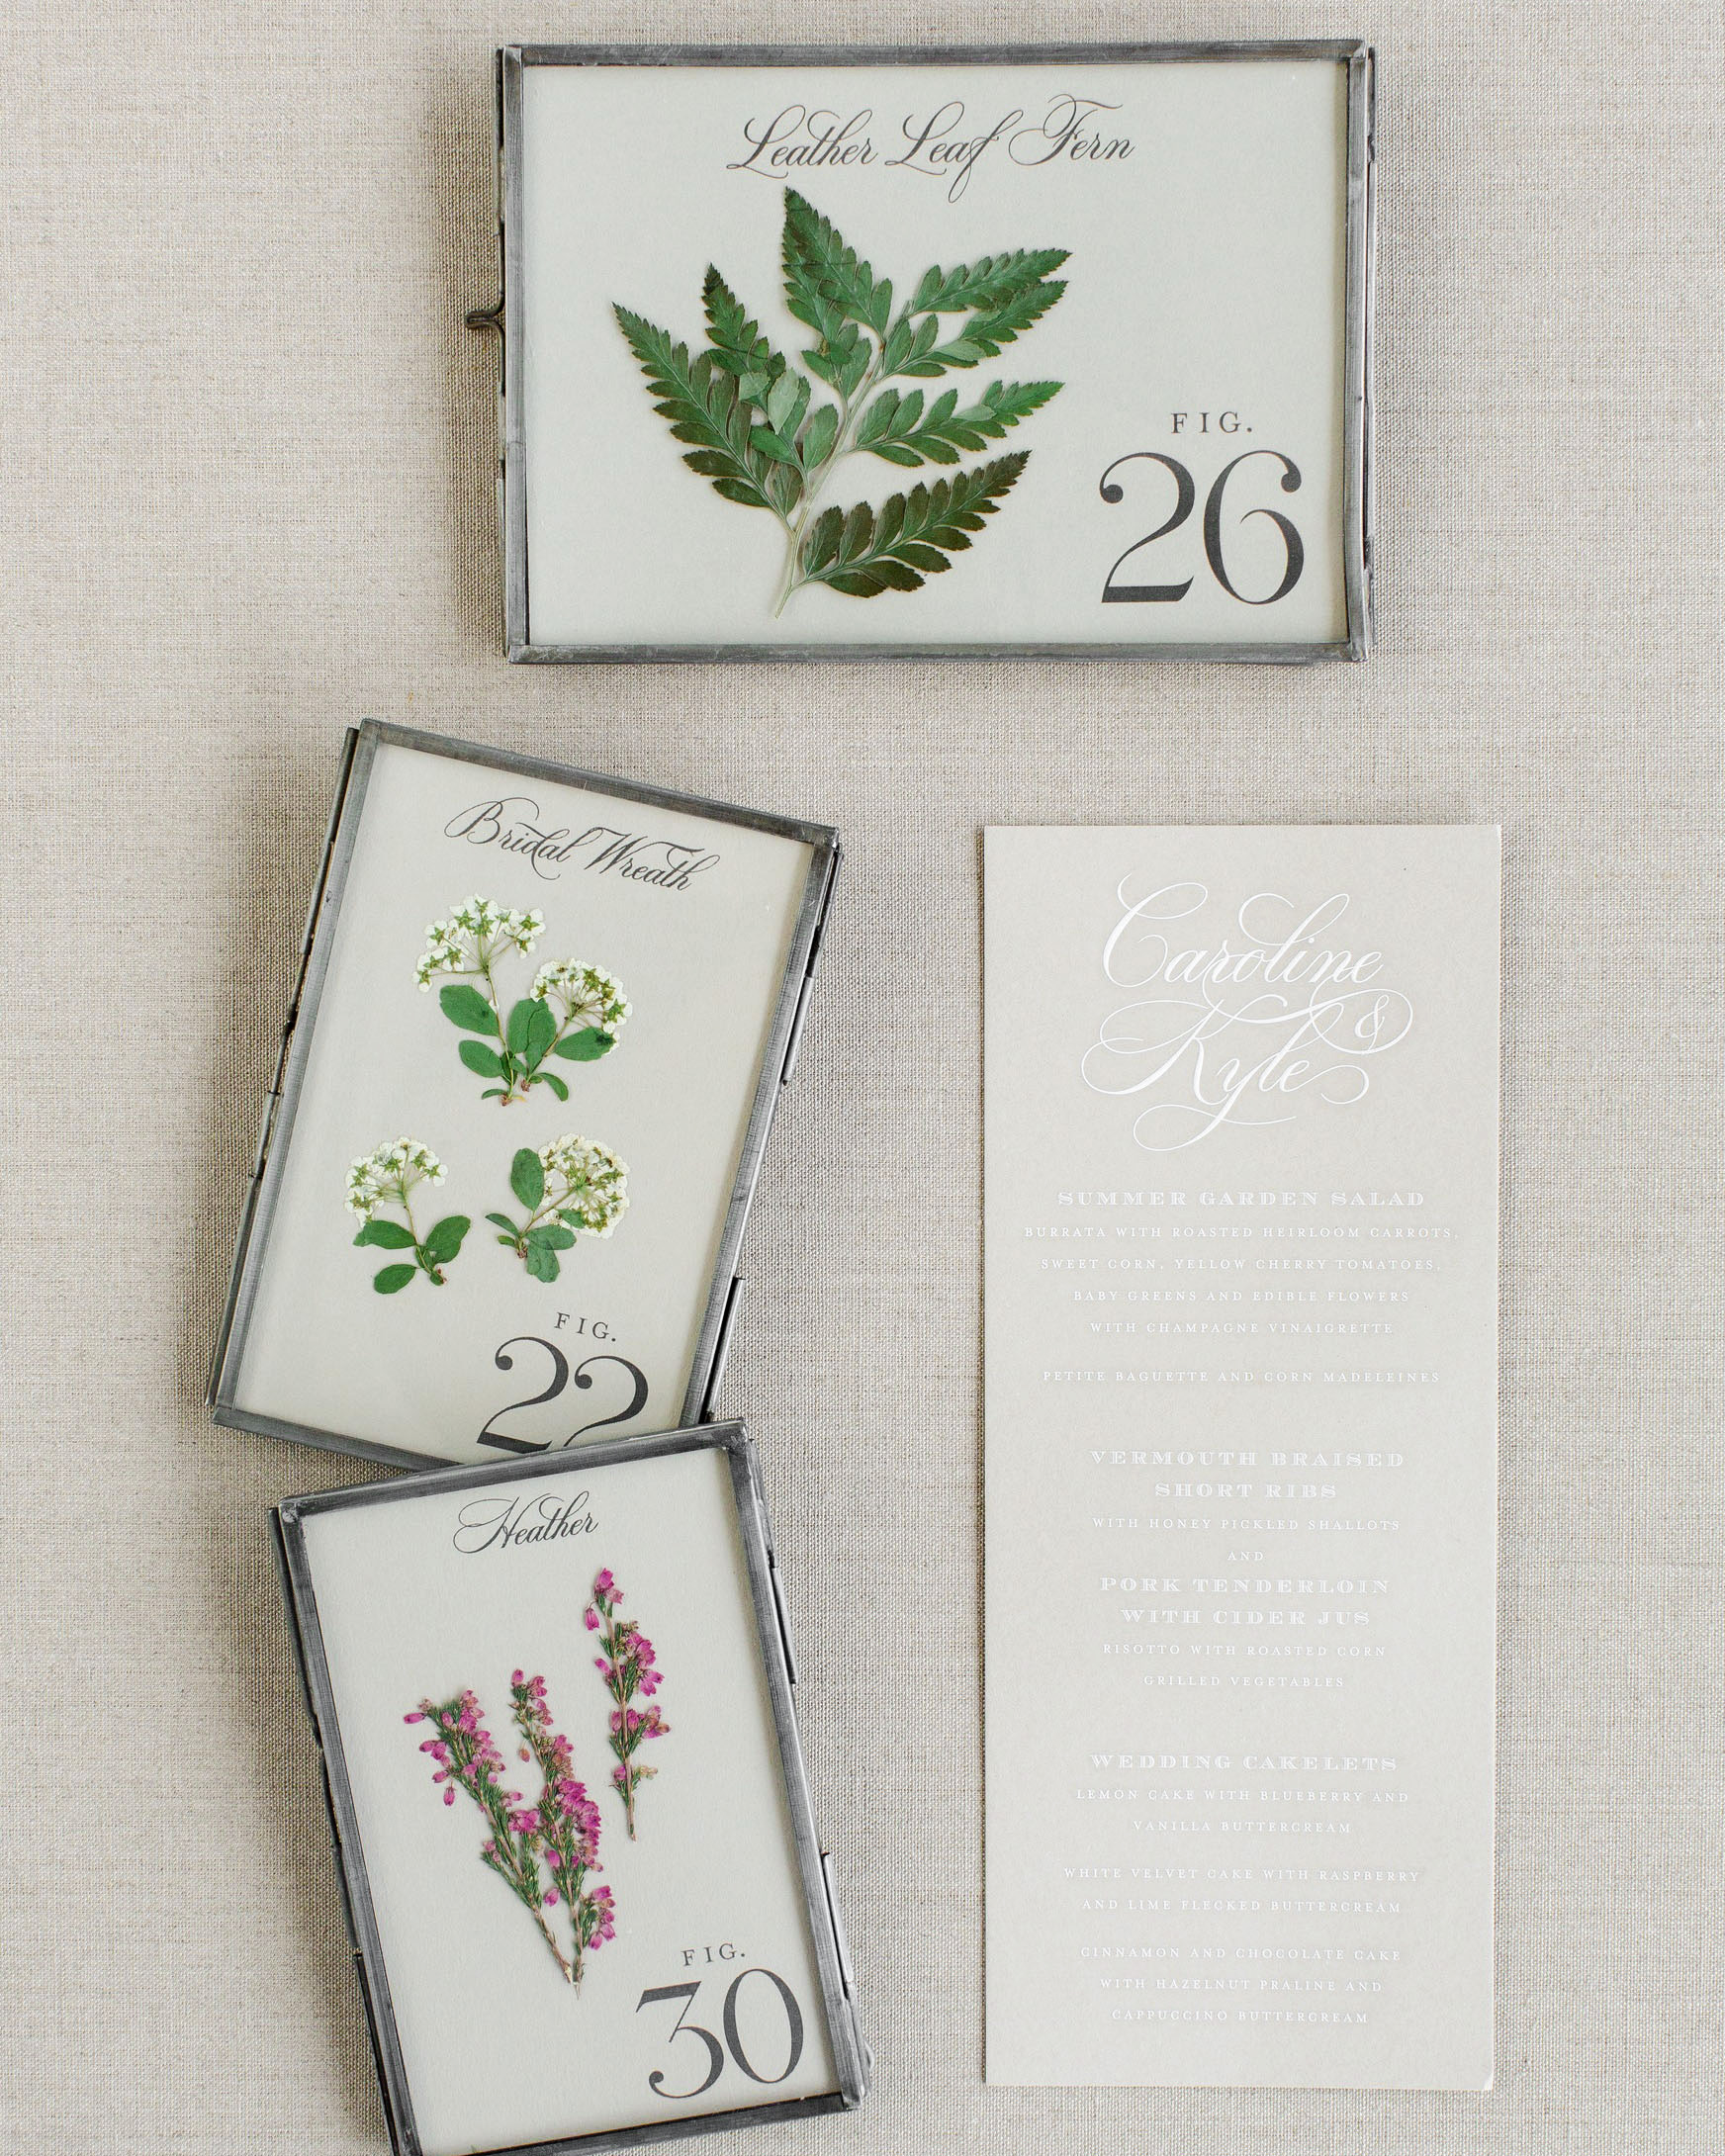 caroline kyle wedding table numbers